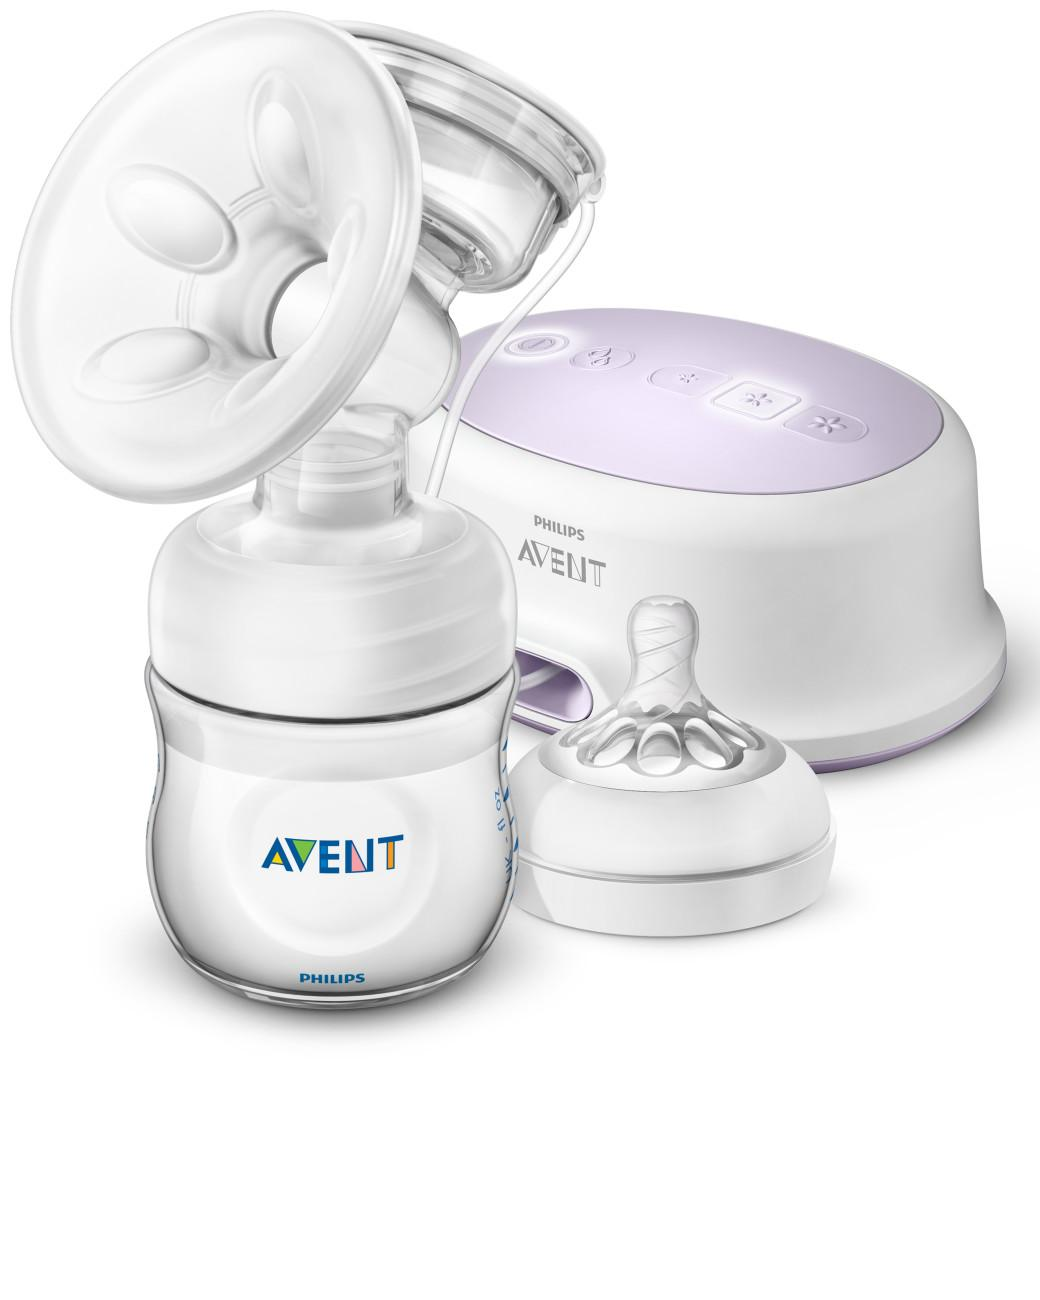 New Philips Avent Comfort Single Electric Breast Pump